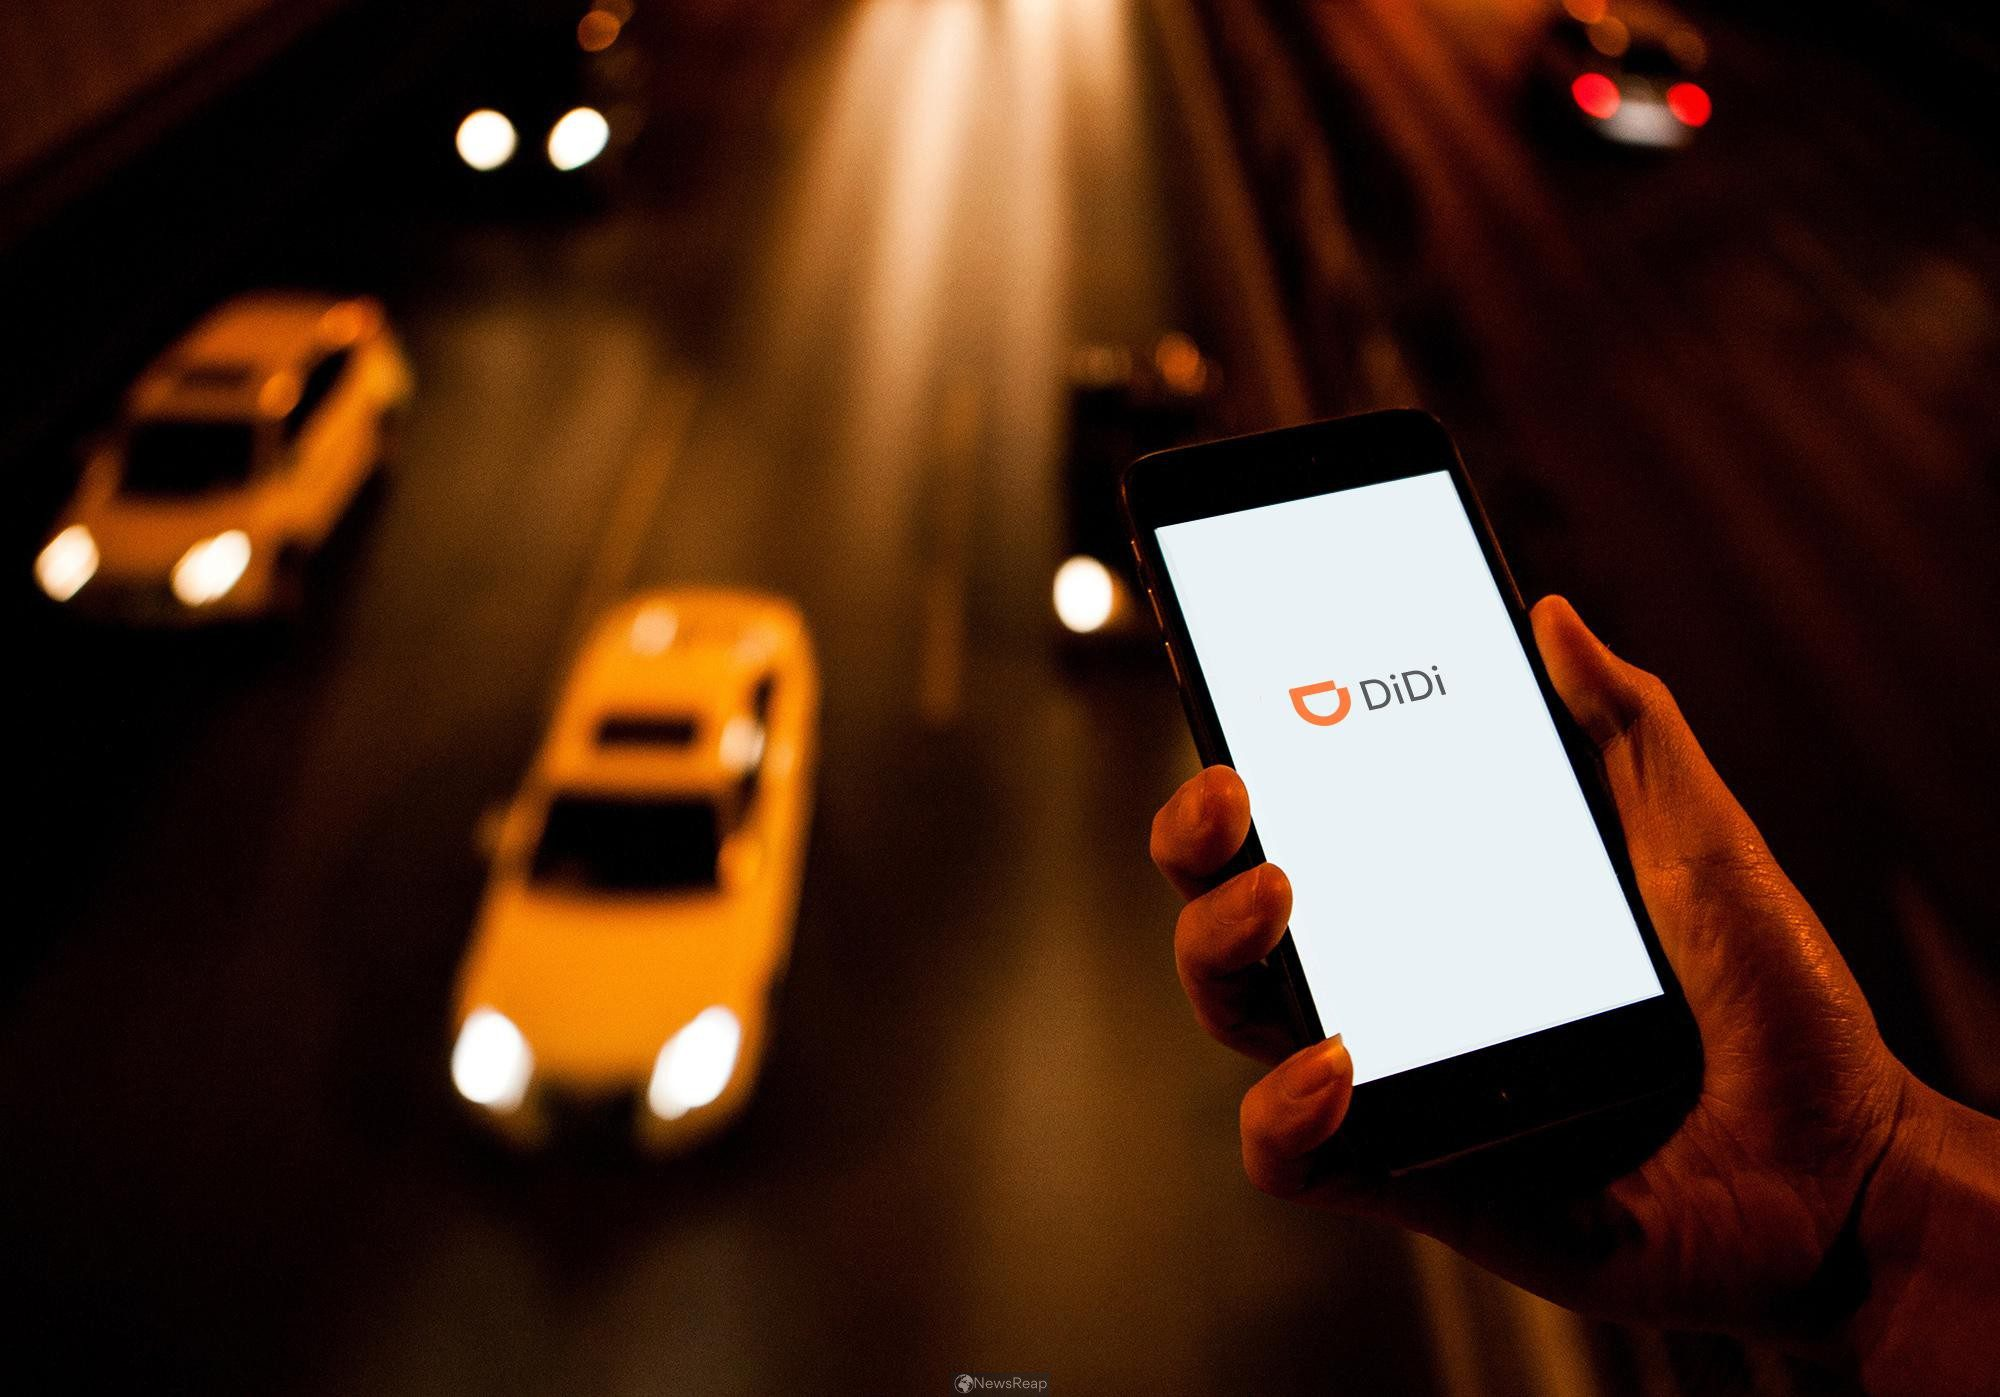 Didi says it stores all China user and roads data in China